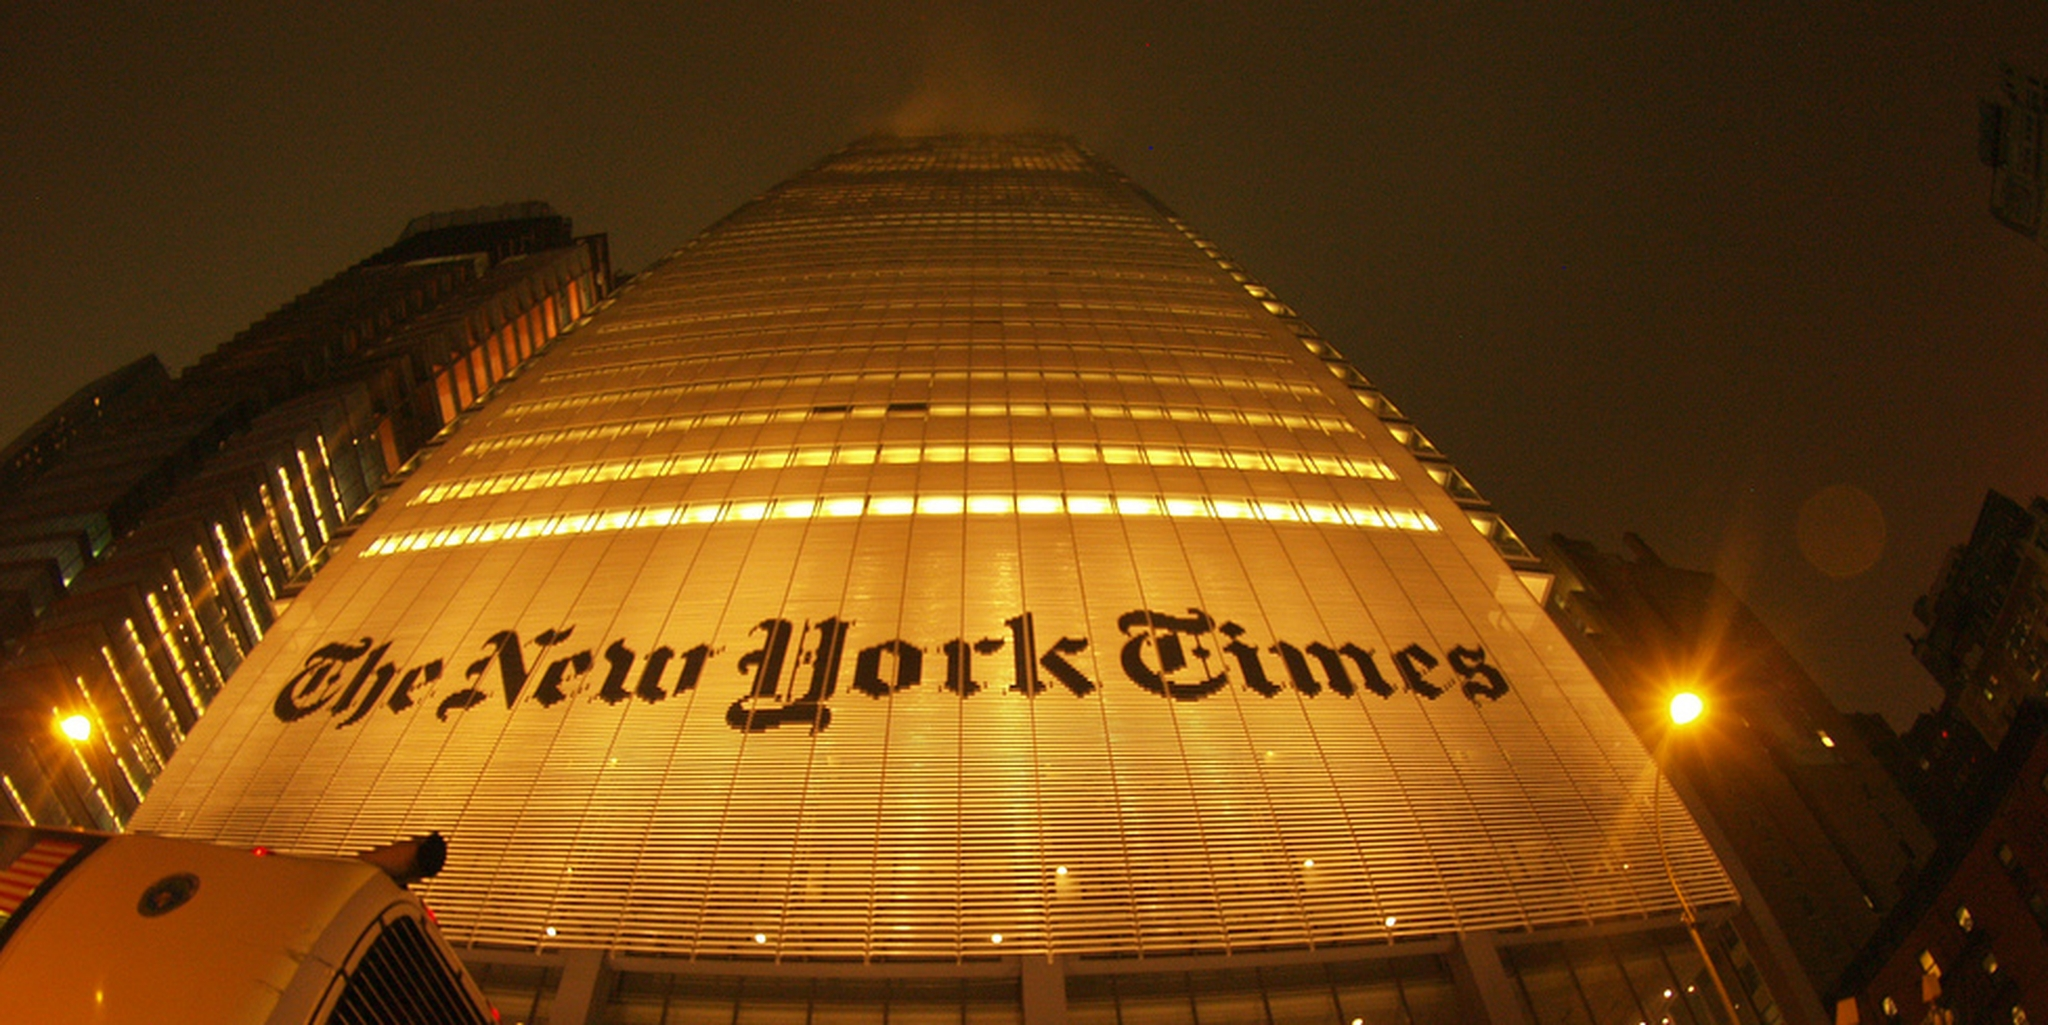 New York Times Building, NYC | Flickr - Photo Sharing!